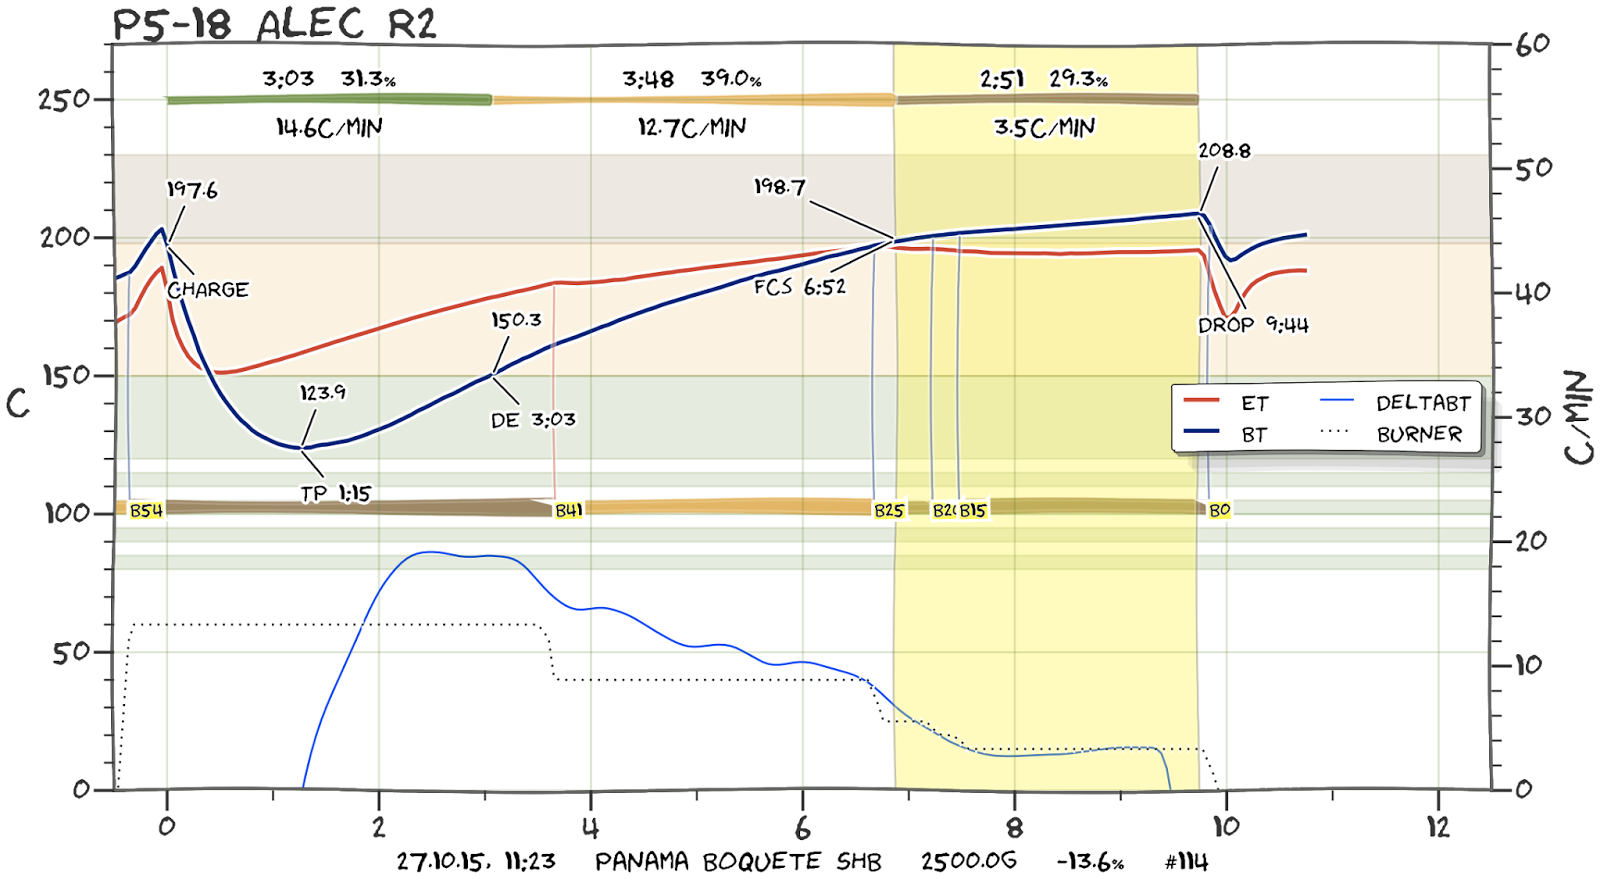 Artisan die erste deutsche scae rstmeisterschaft 2015 the line below the graphs indicate the date and time of the roast the coffee roasted the batch size the weight loss as well as the resulting ground color pooptronica Images